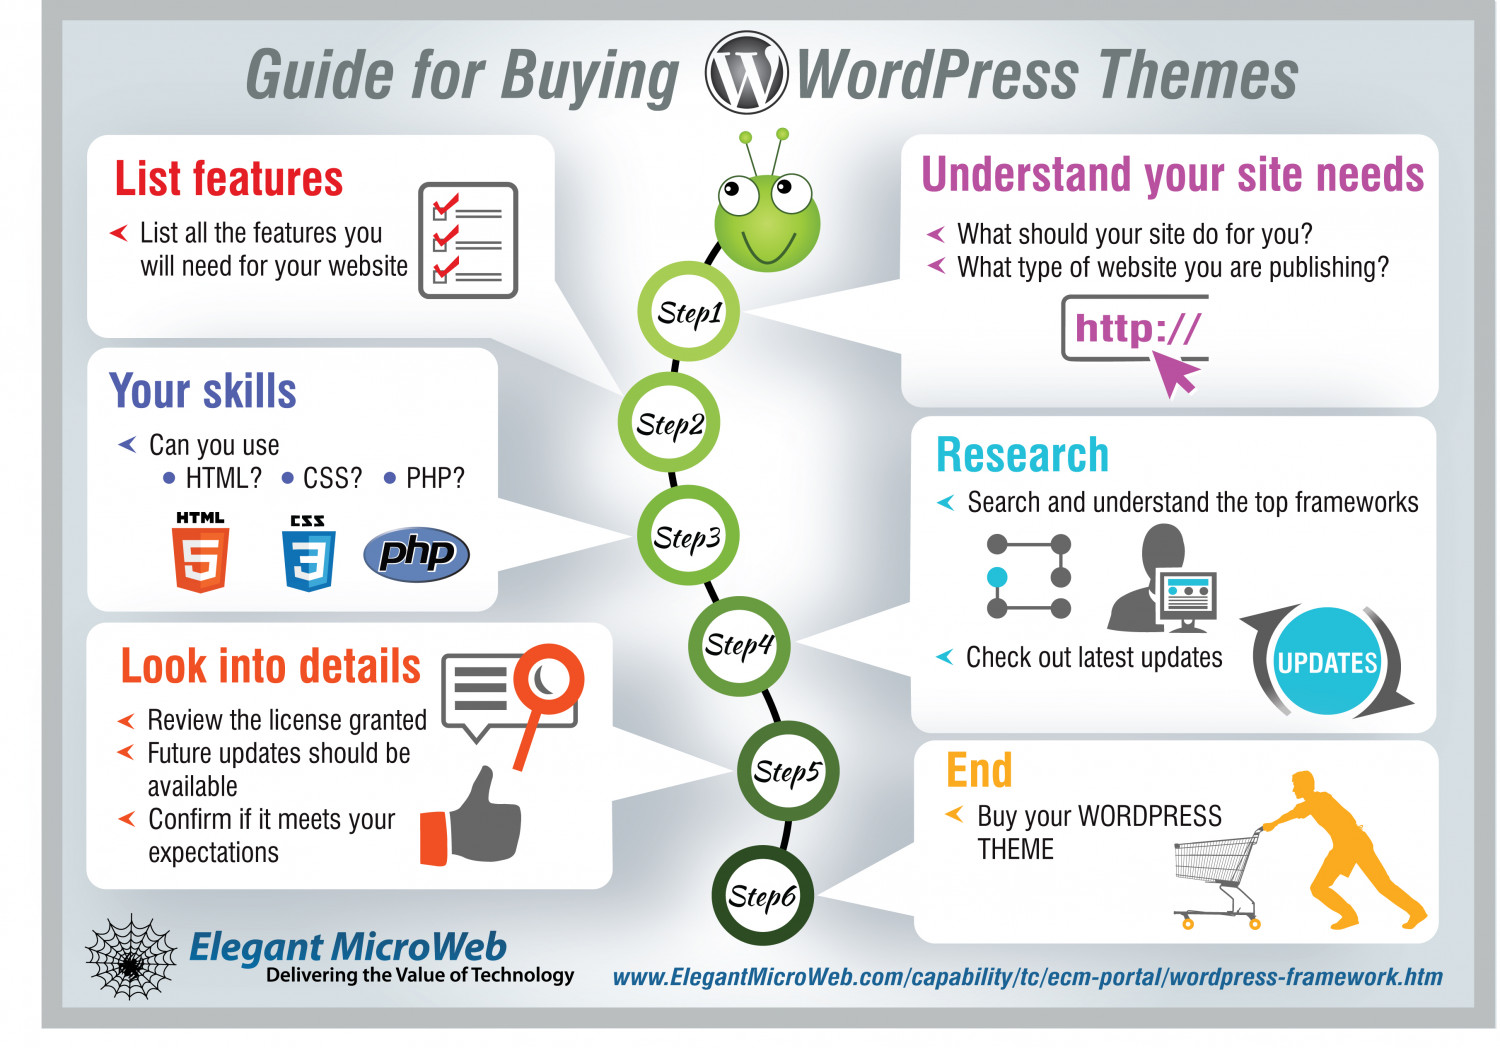 Guide for buying WordPress Themes Infographic